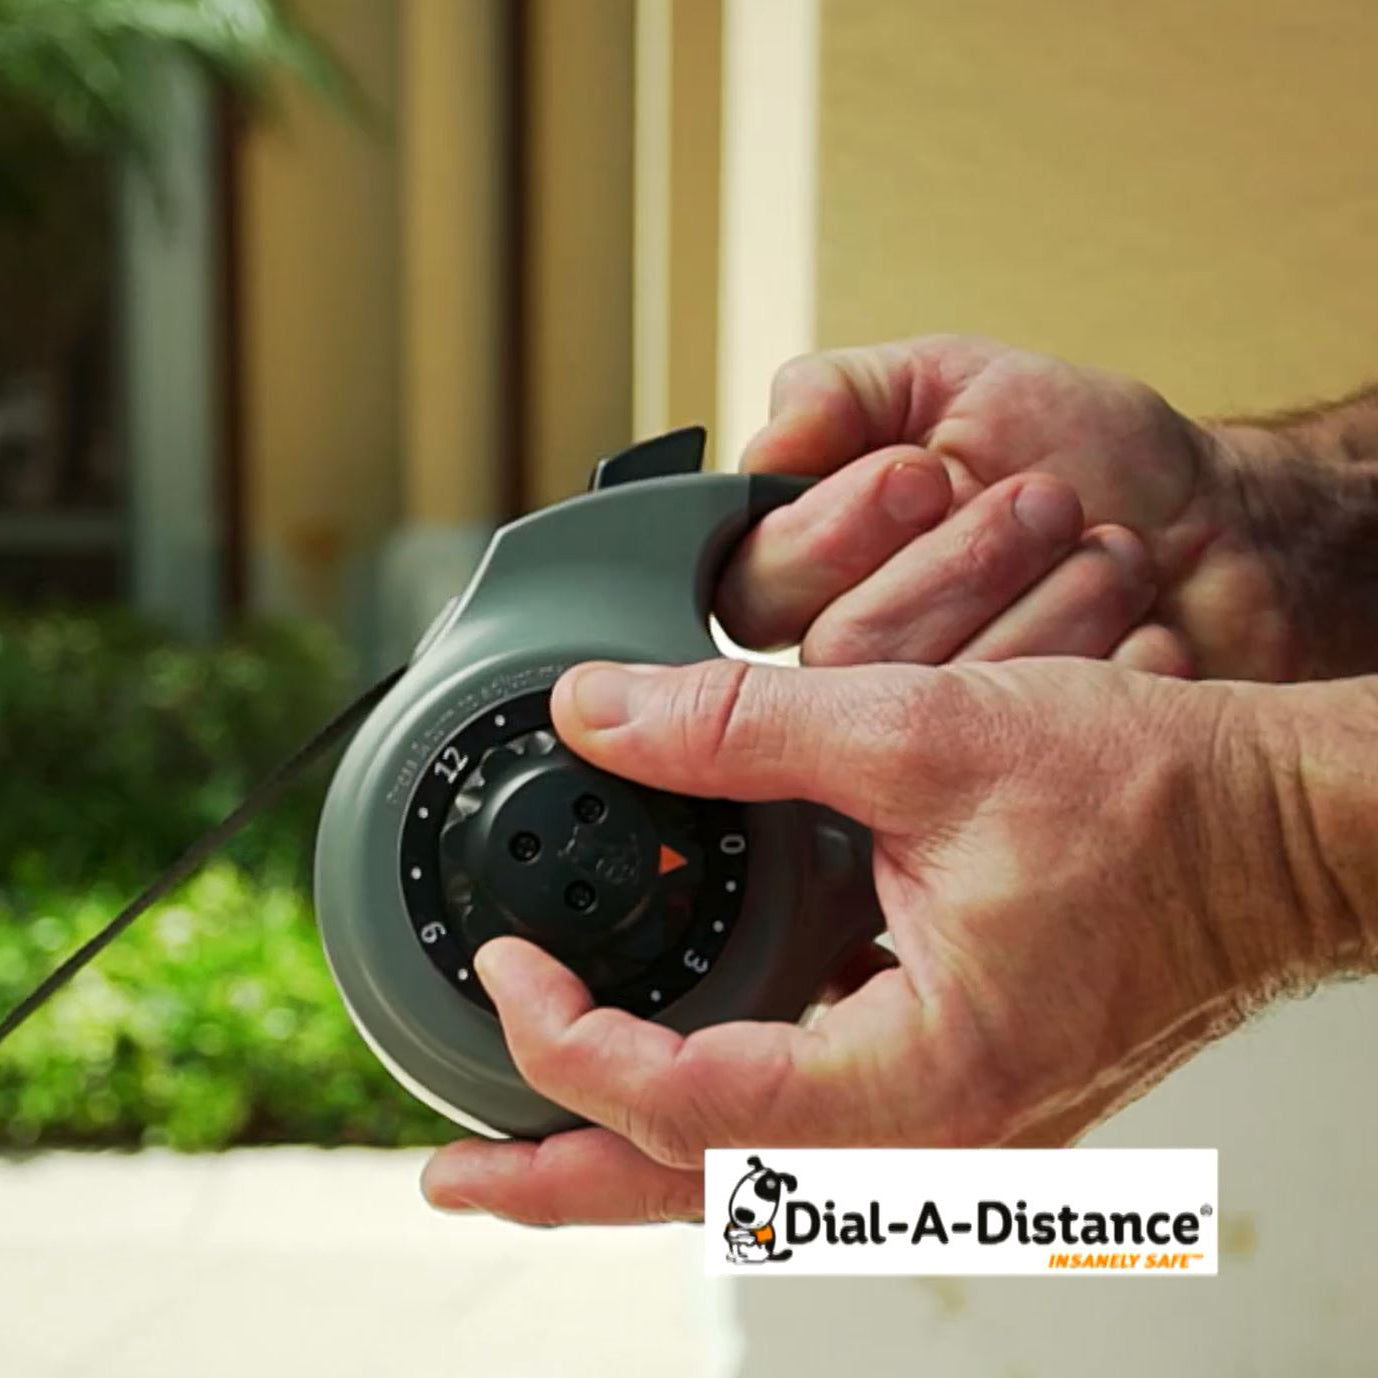 dial-a-distance retractable dog leash ability to change distance